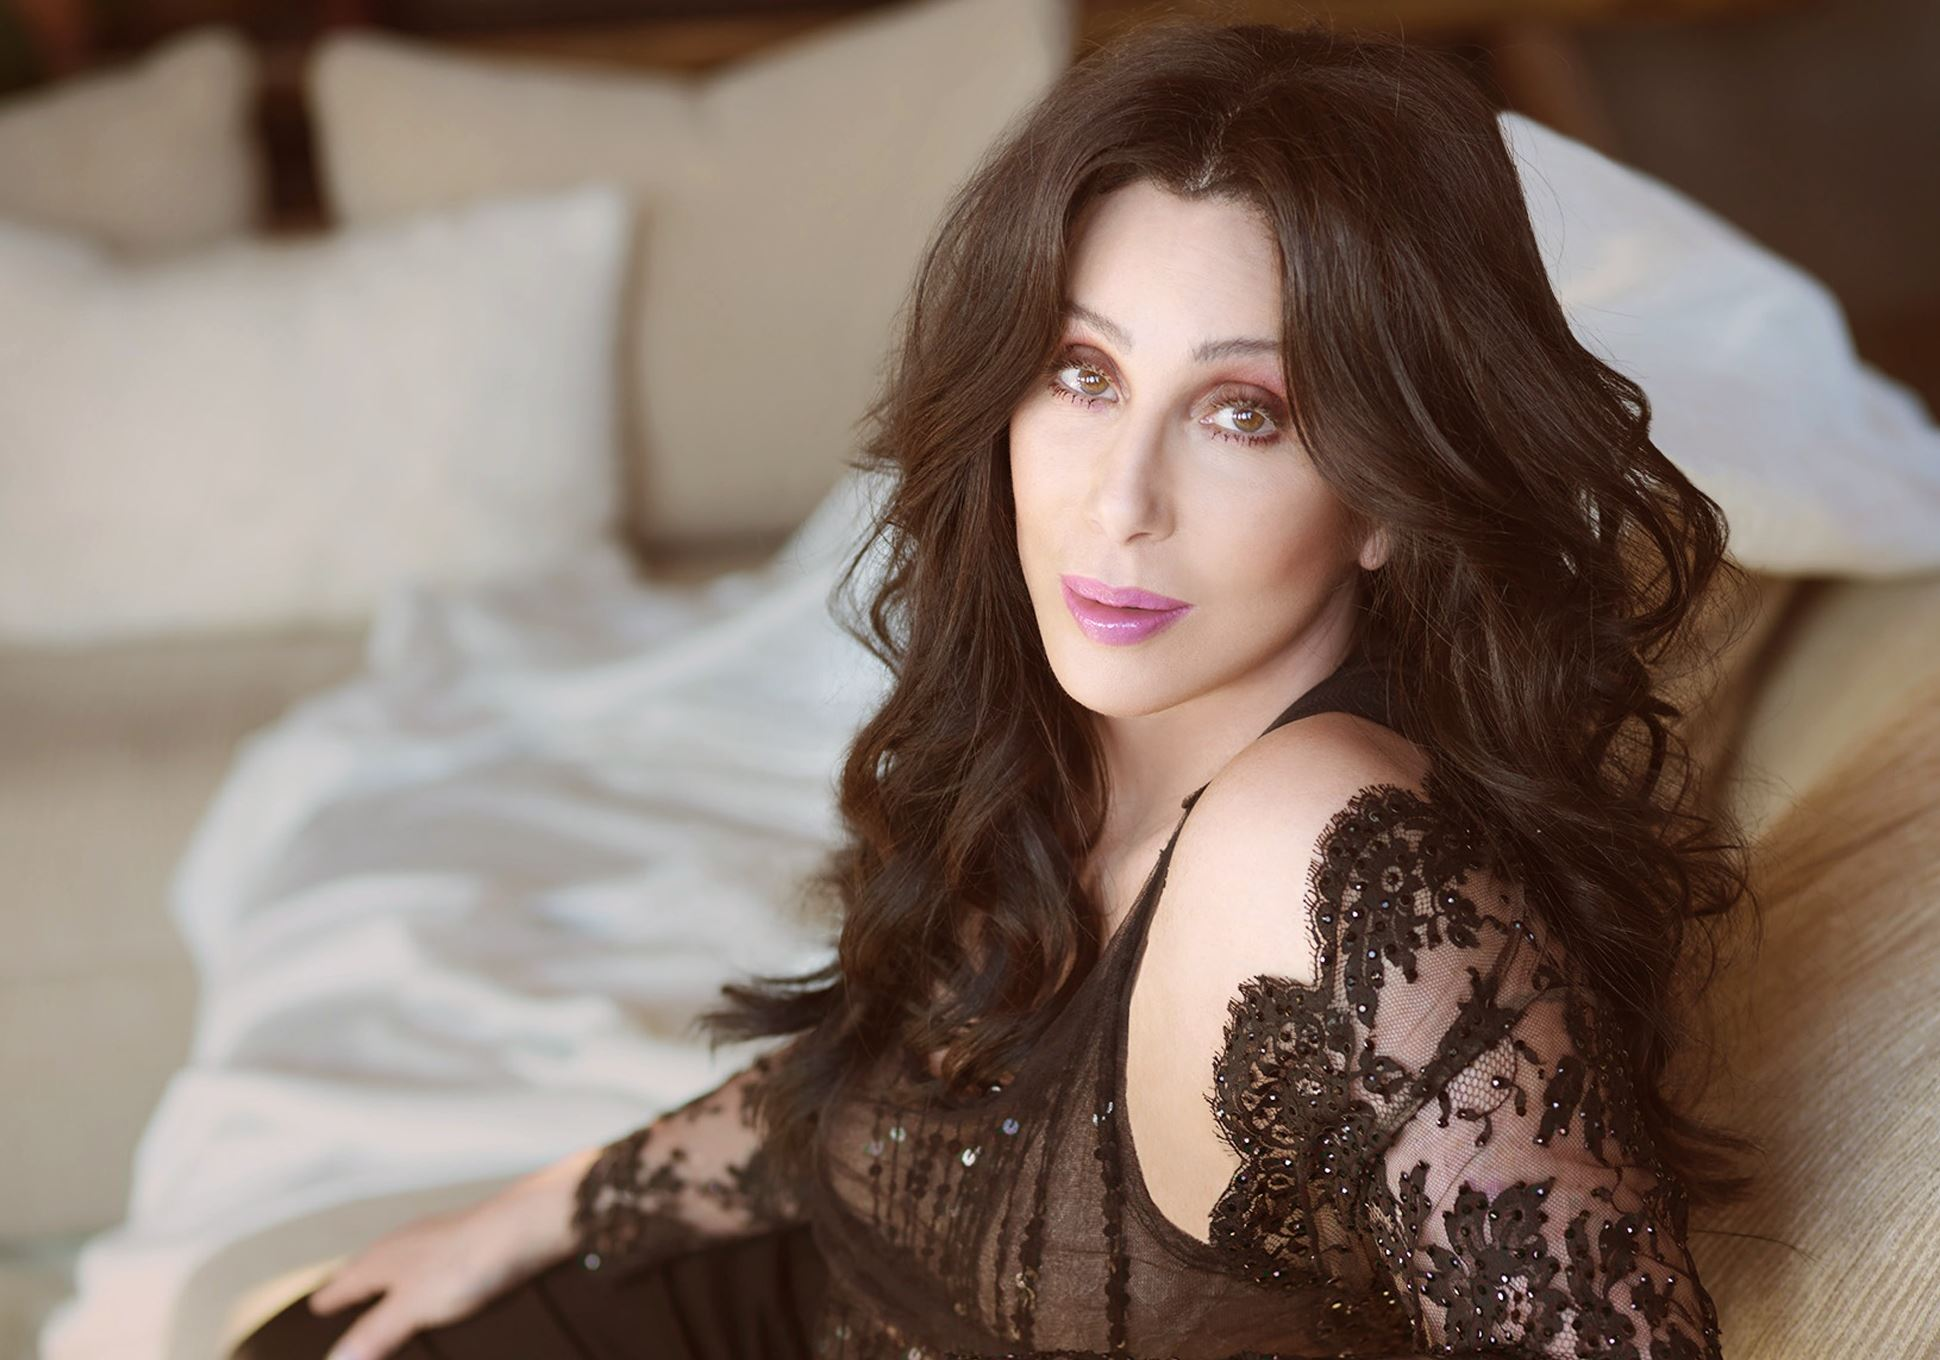 Cher Full HD Wallpaper and Background Image | 1940x1360 ...